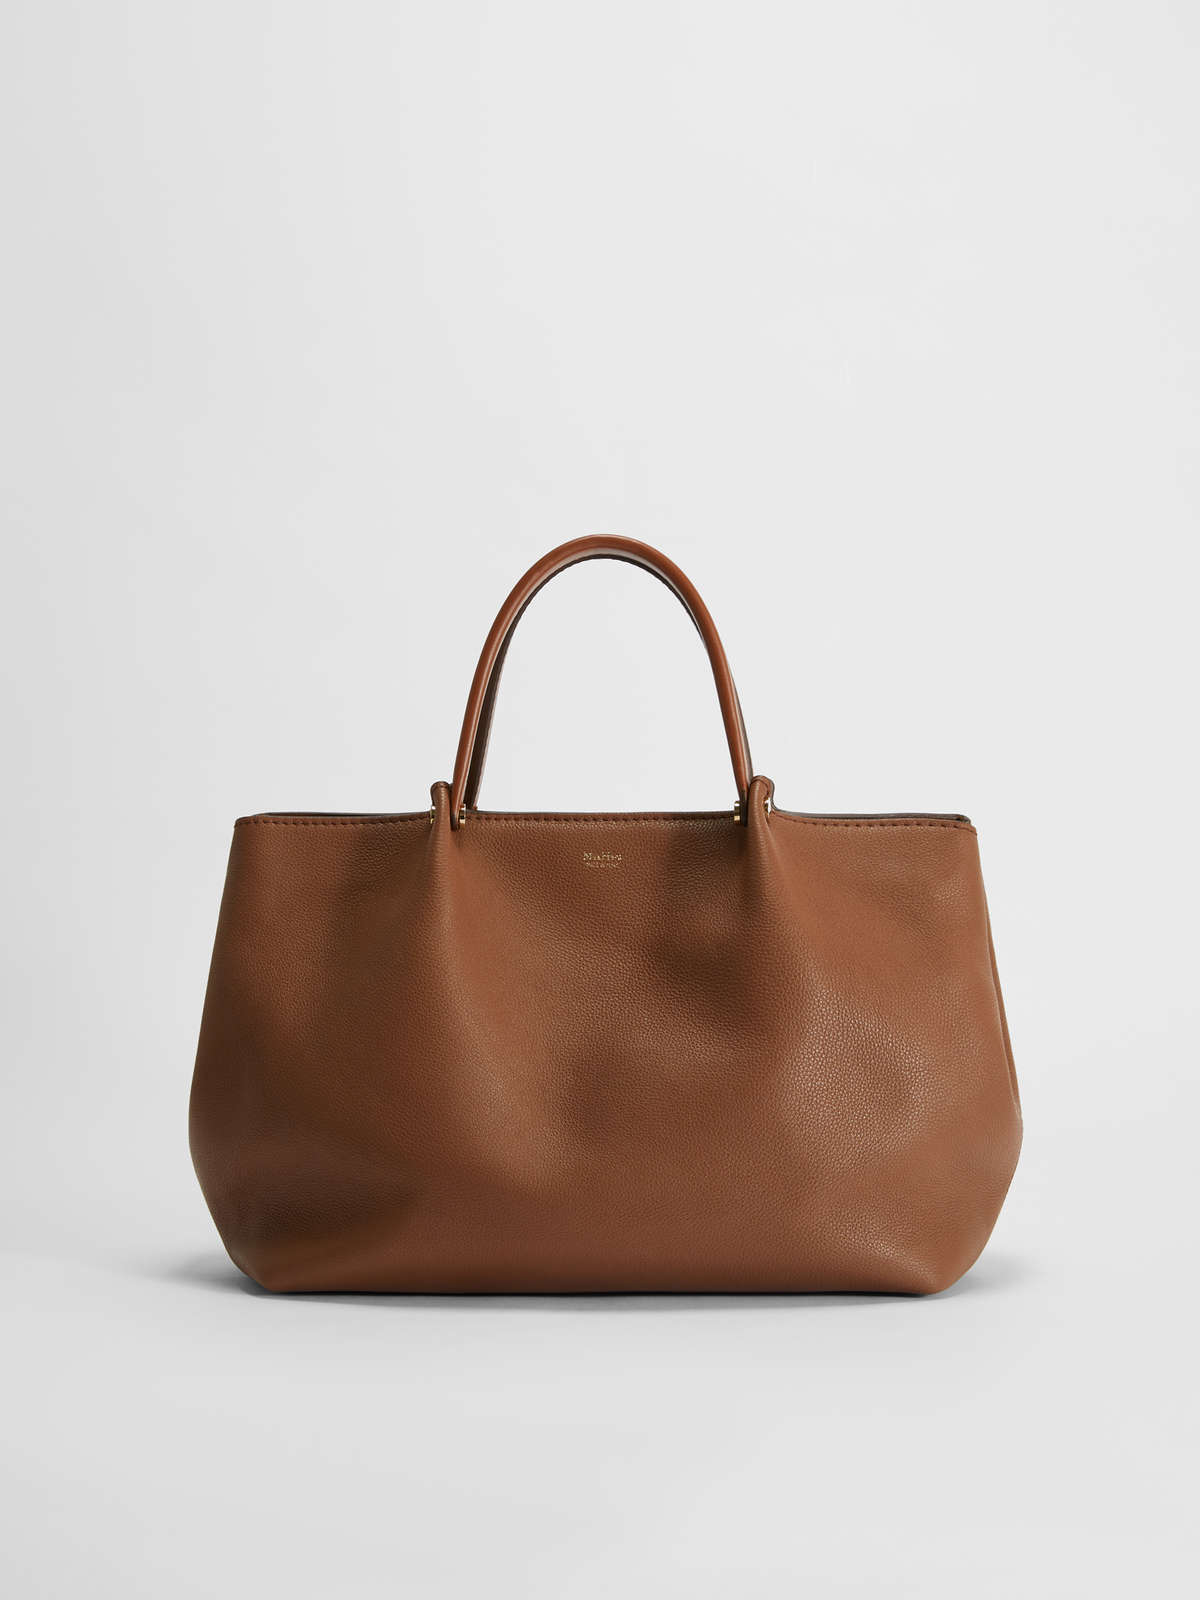 Leather Tote Bag - Max Mara